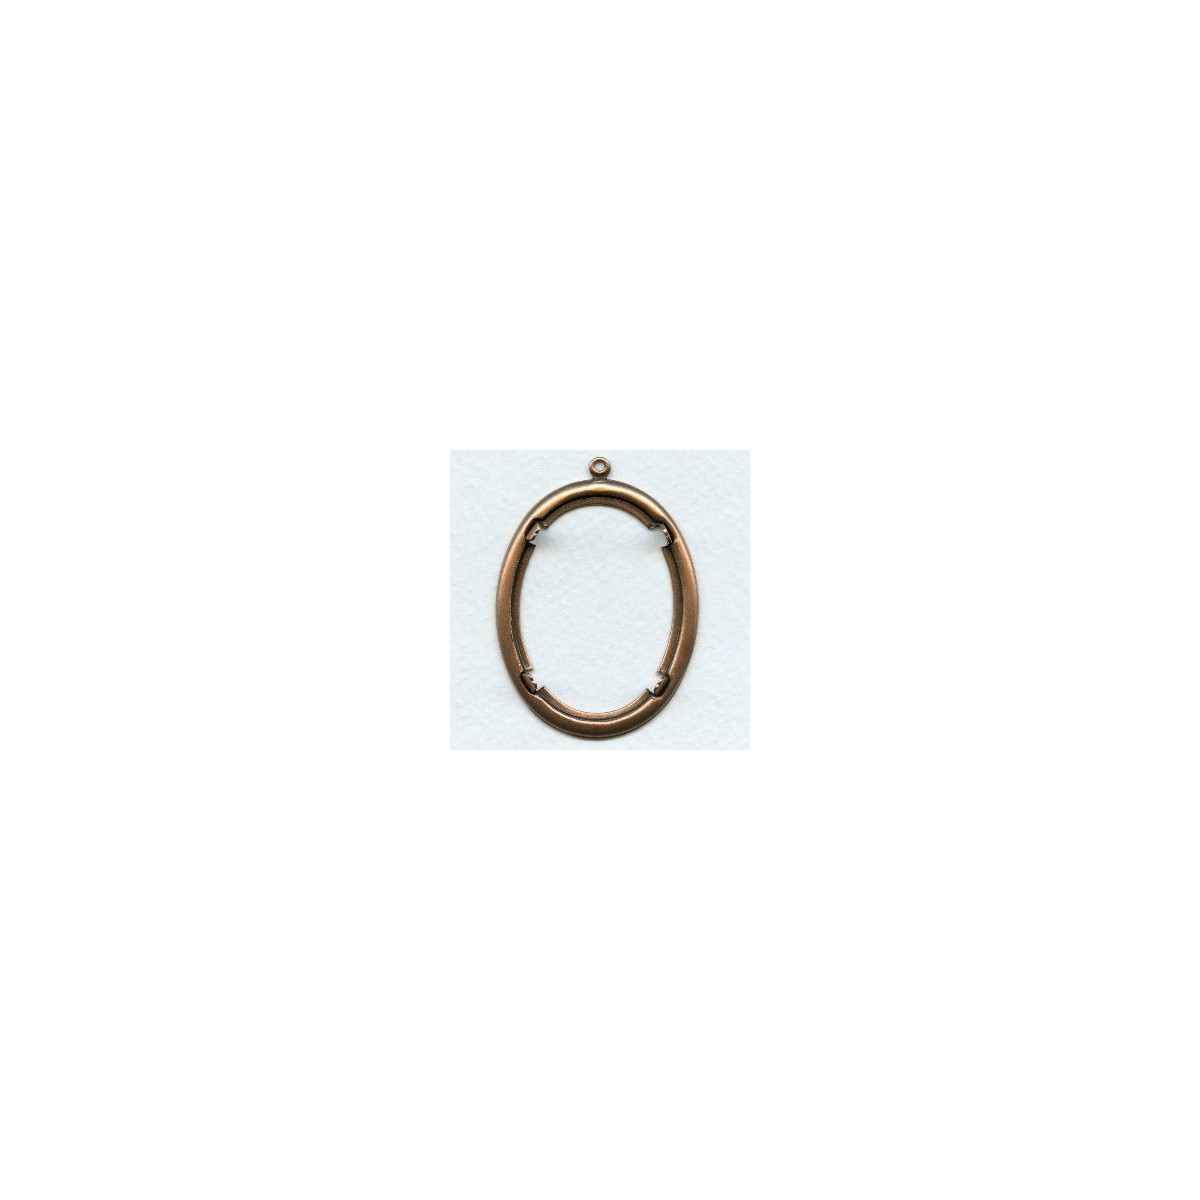 Smooth Edge Oxidized Copper Plated Settings 40x30mm